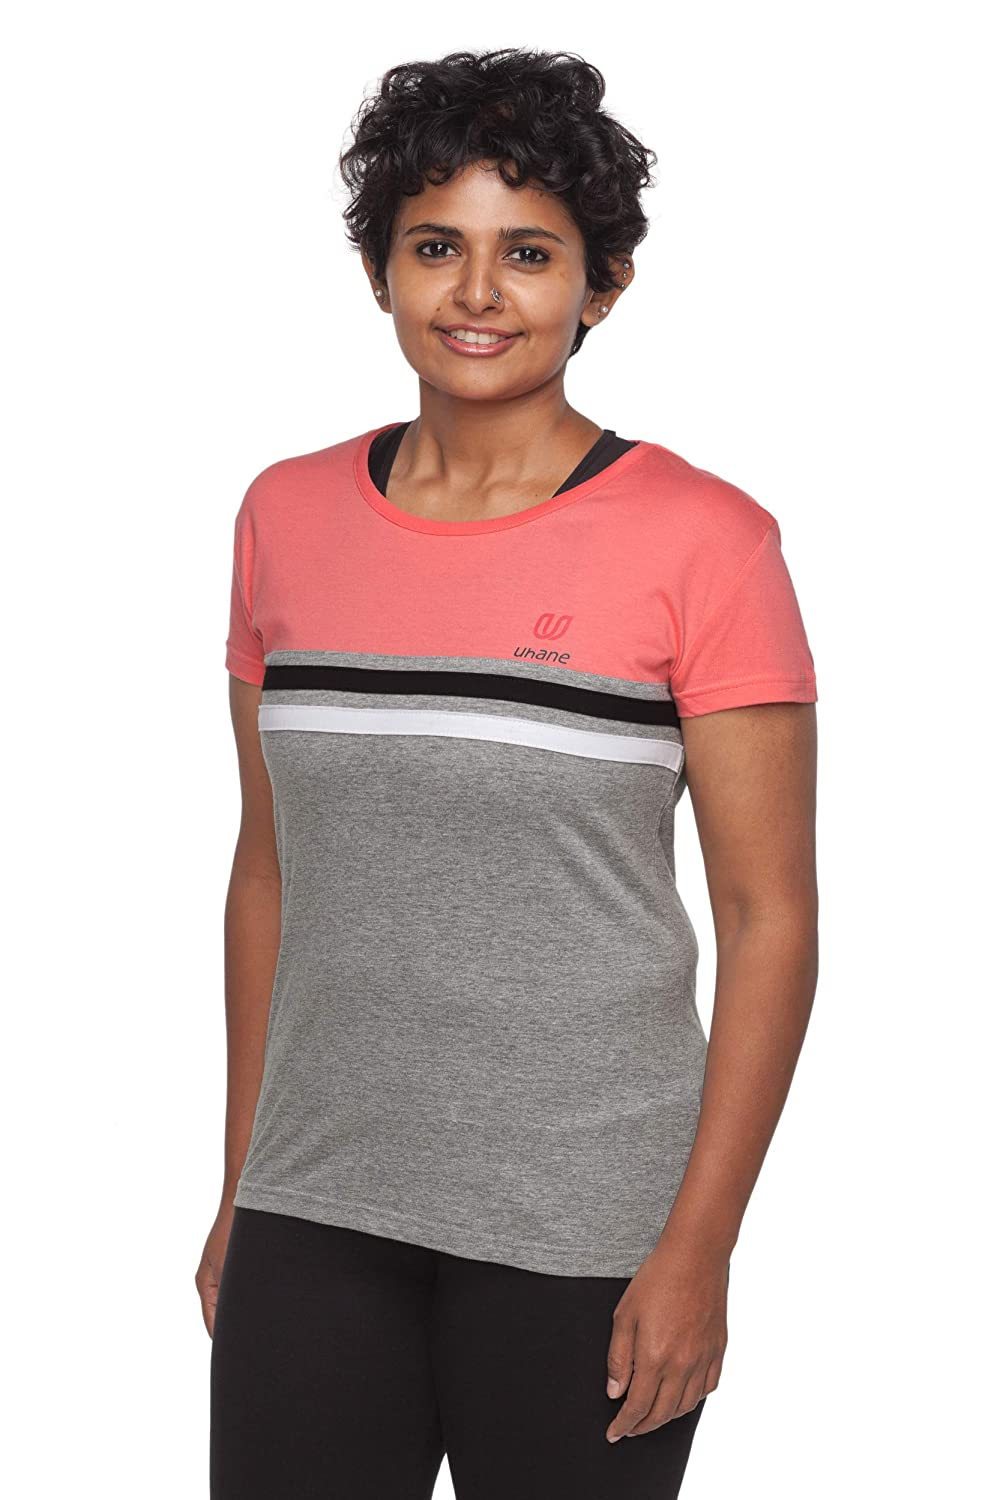 Uhane Women's Yoga and Gym Cotton Work-Out Round Neck Slim-Fit T-Shirt (Pink) Short Sleeves Top for Sports and Fitness